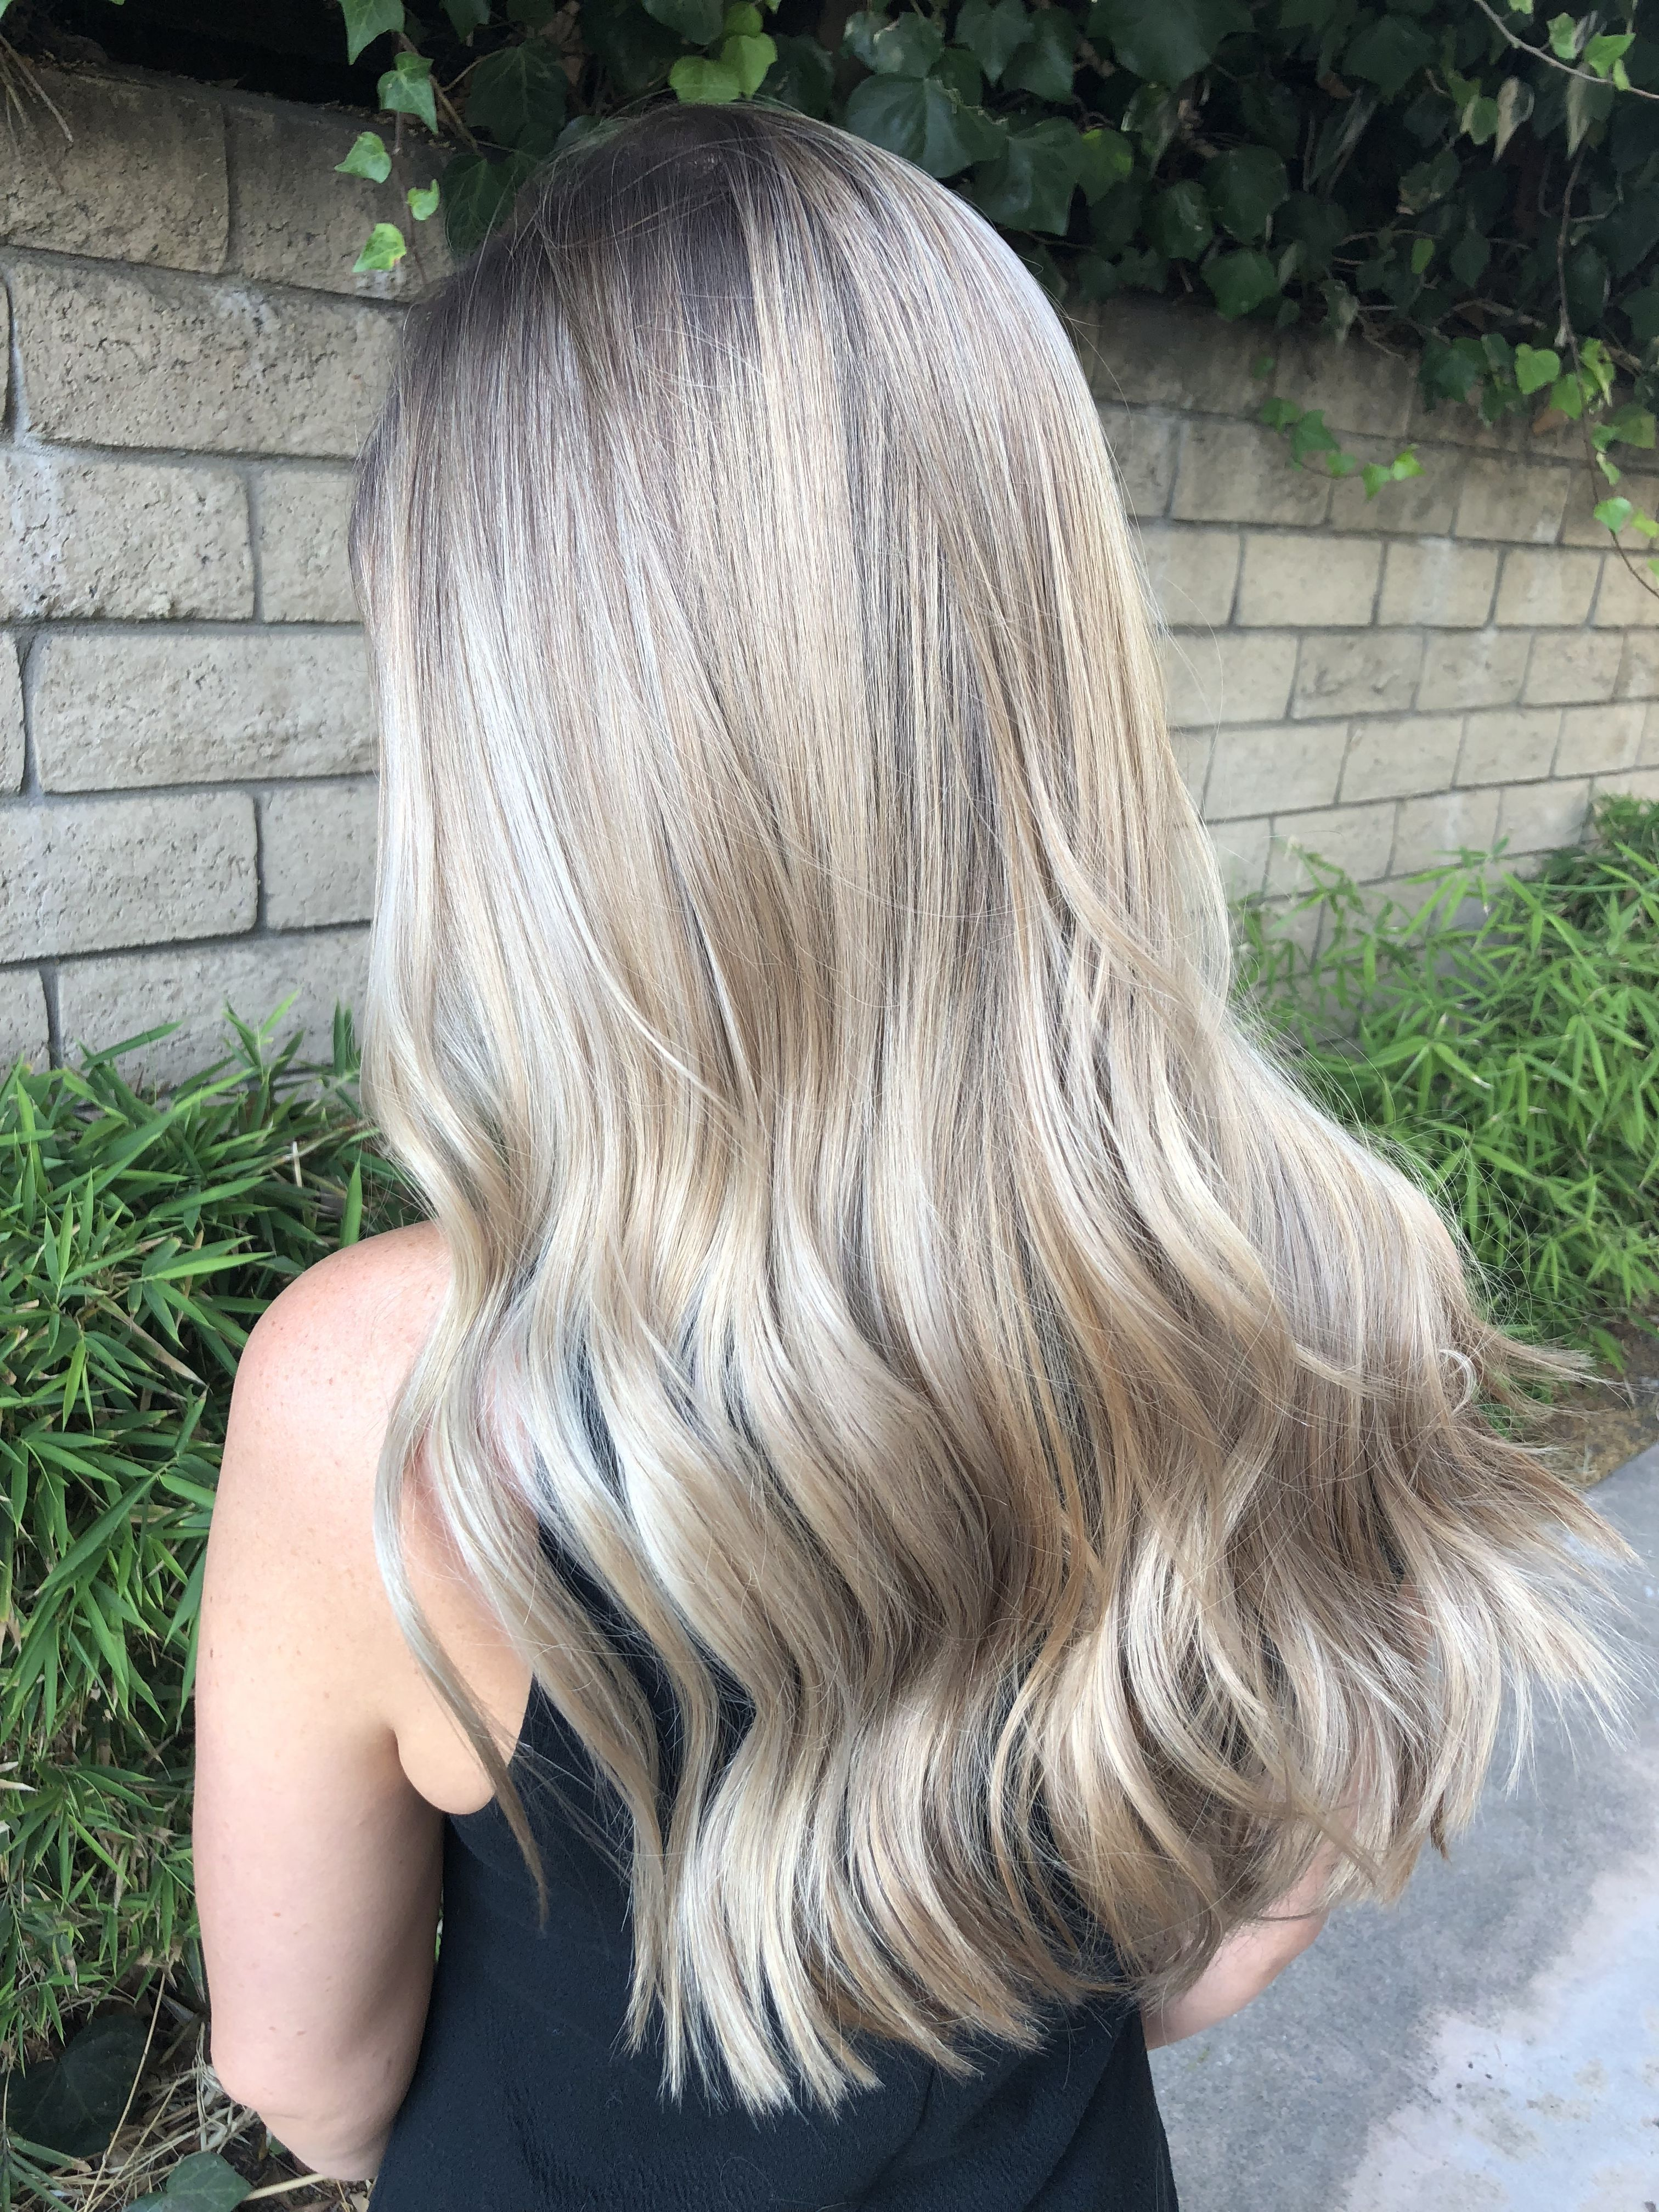 41+ Ash blonde with root smudge inspirations